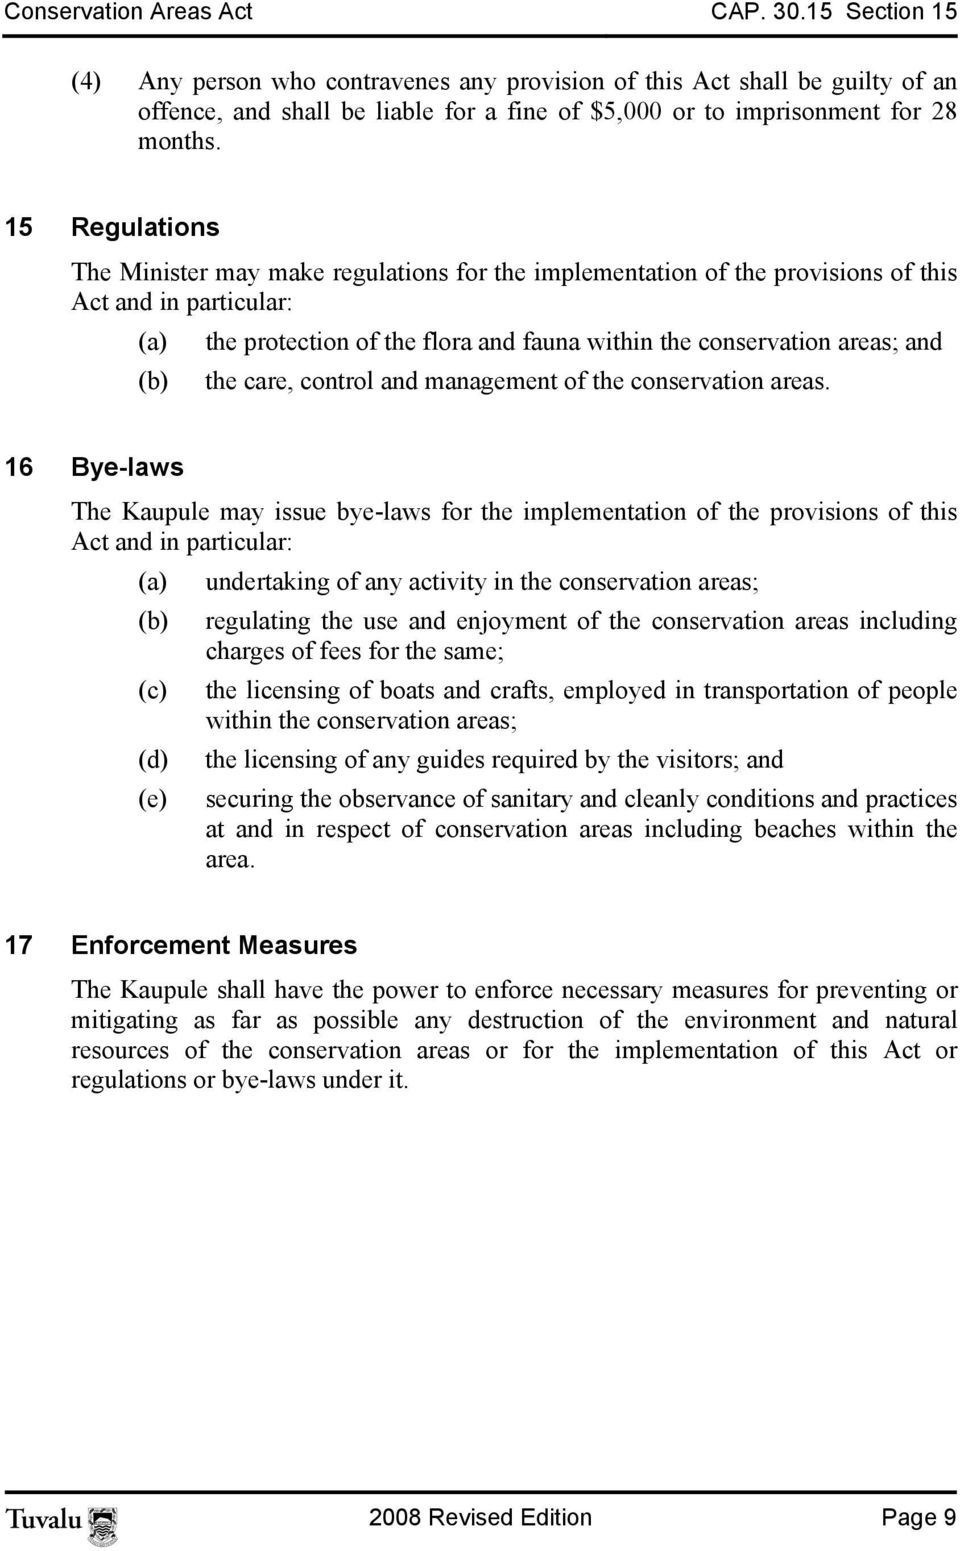 15 Regulations The Minister may make regulations for the implementation of the provisions of this Act and in particular: (a) the protection of the flora and fauna within the conservation areas; and